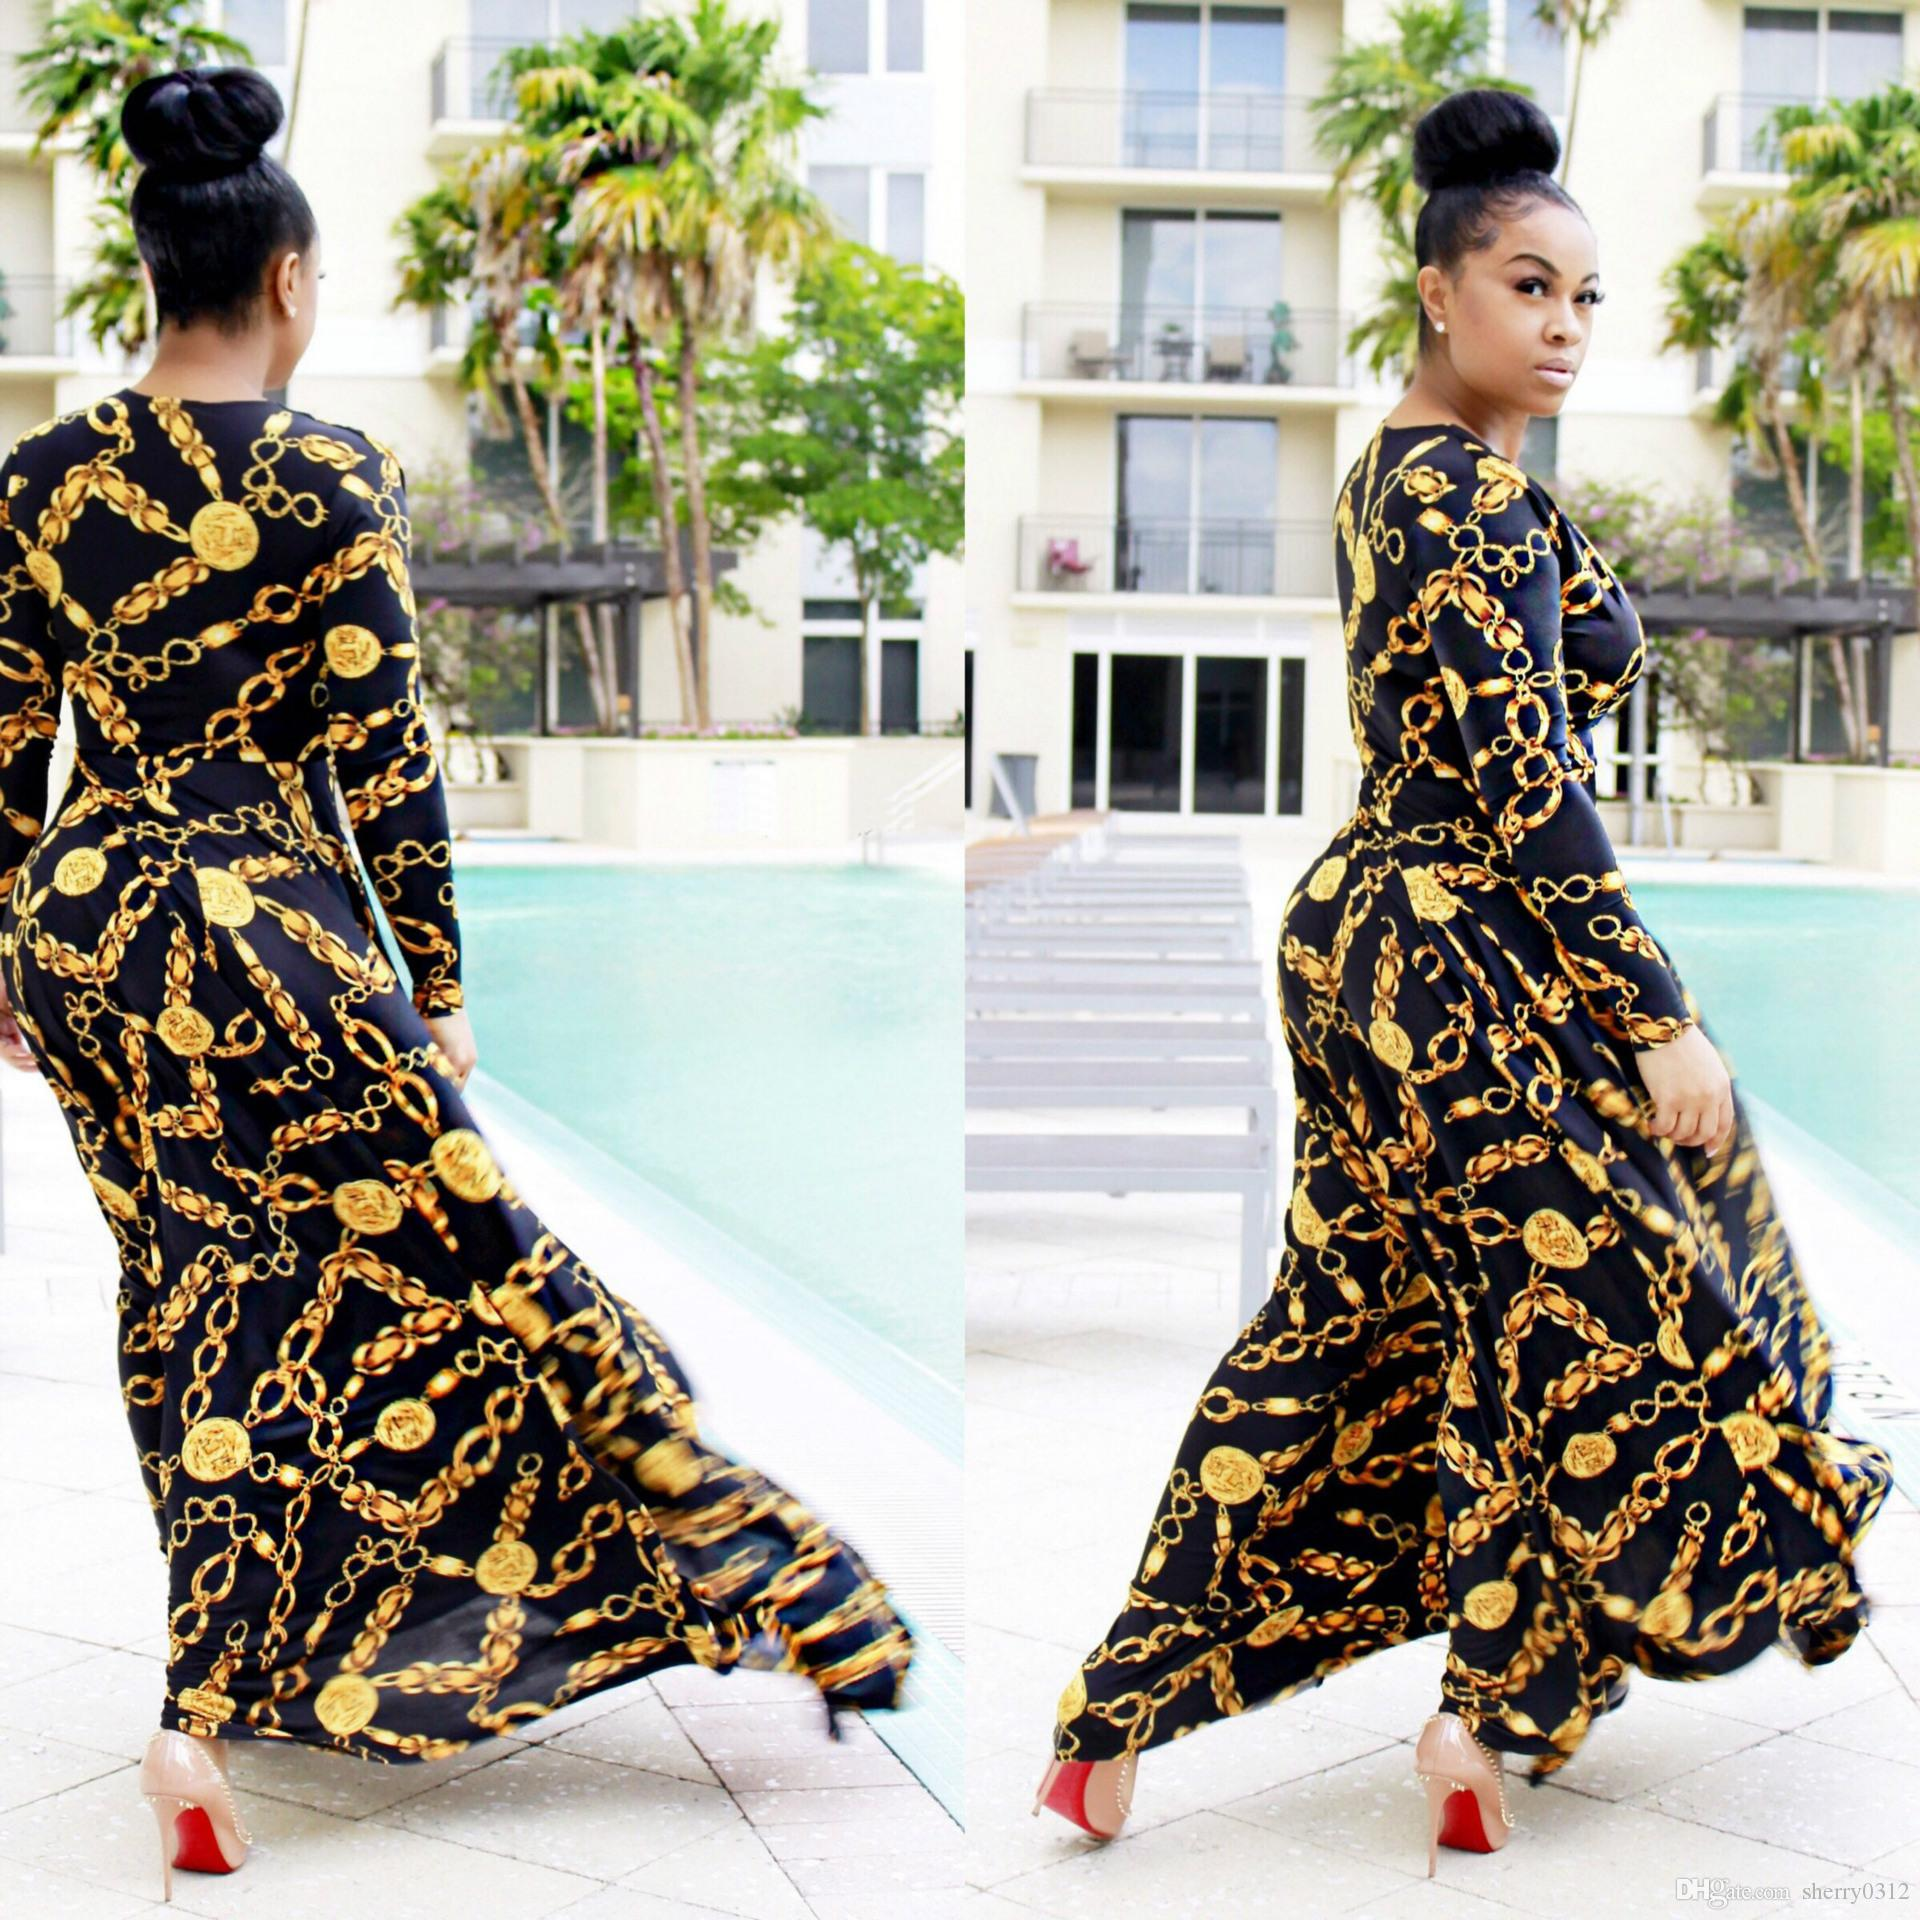 Best Vintage Traditional African Dresses to Buy | Buy New Vintage ...